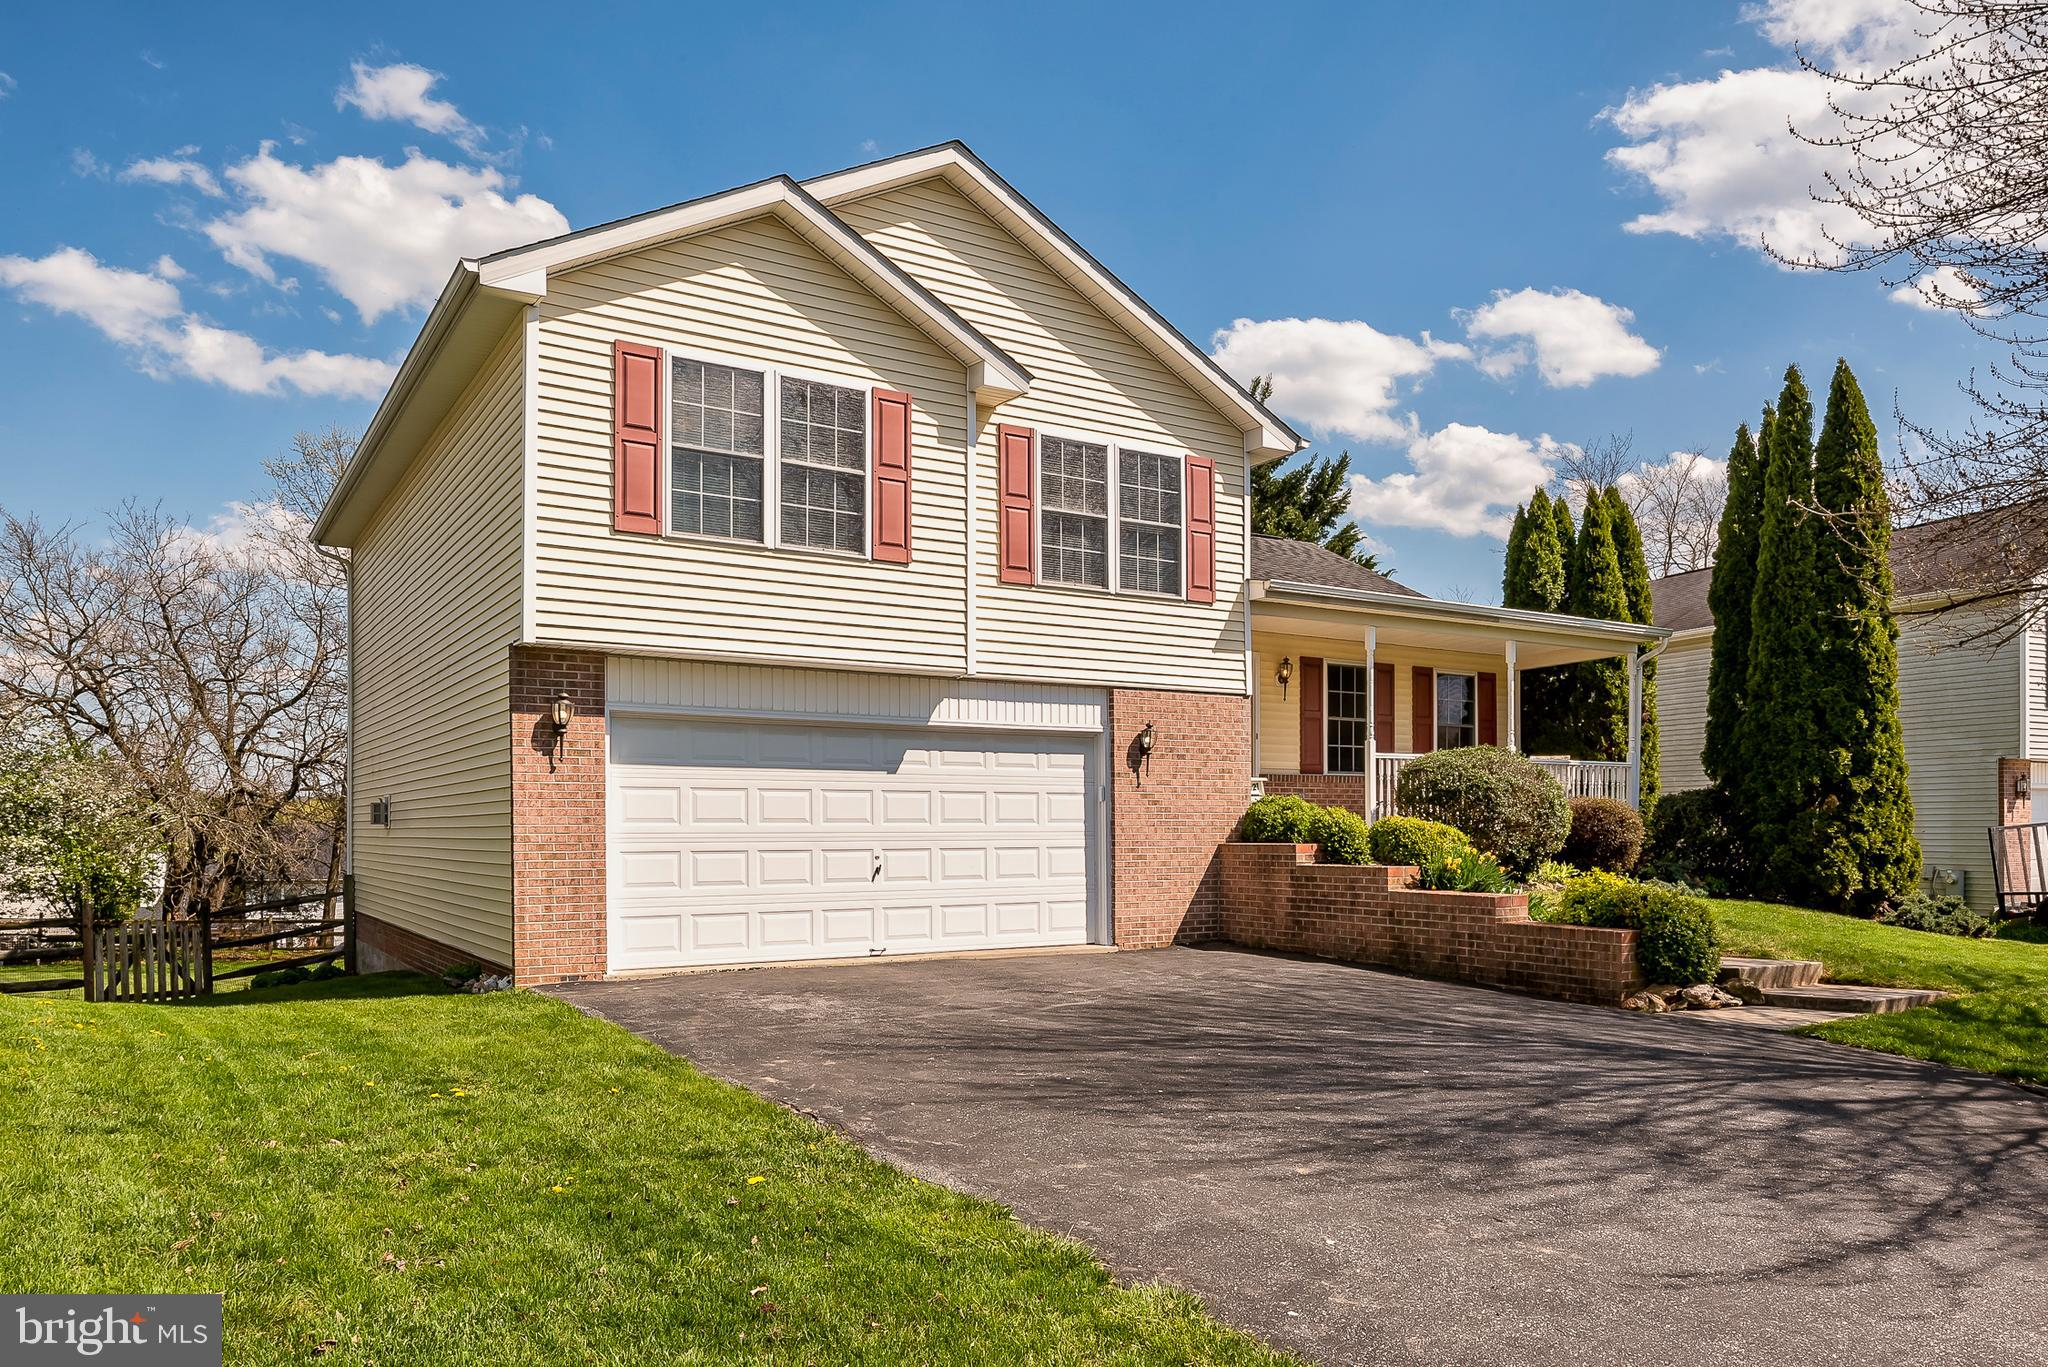 3..2..1..Get ready to fall in love with this home. Welcome to 321 Snowfall Way, located in the beaut